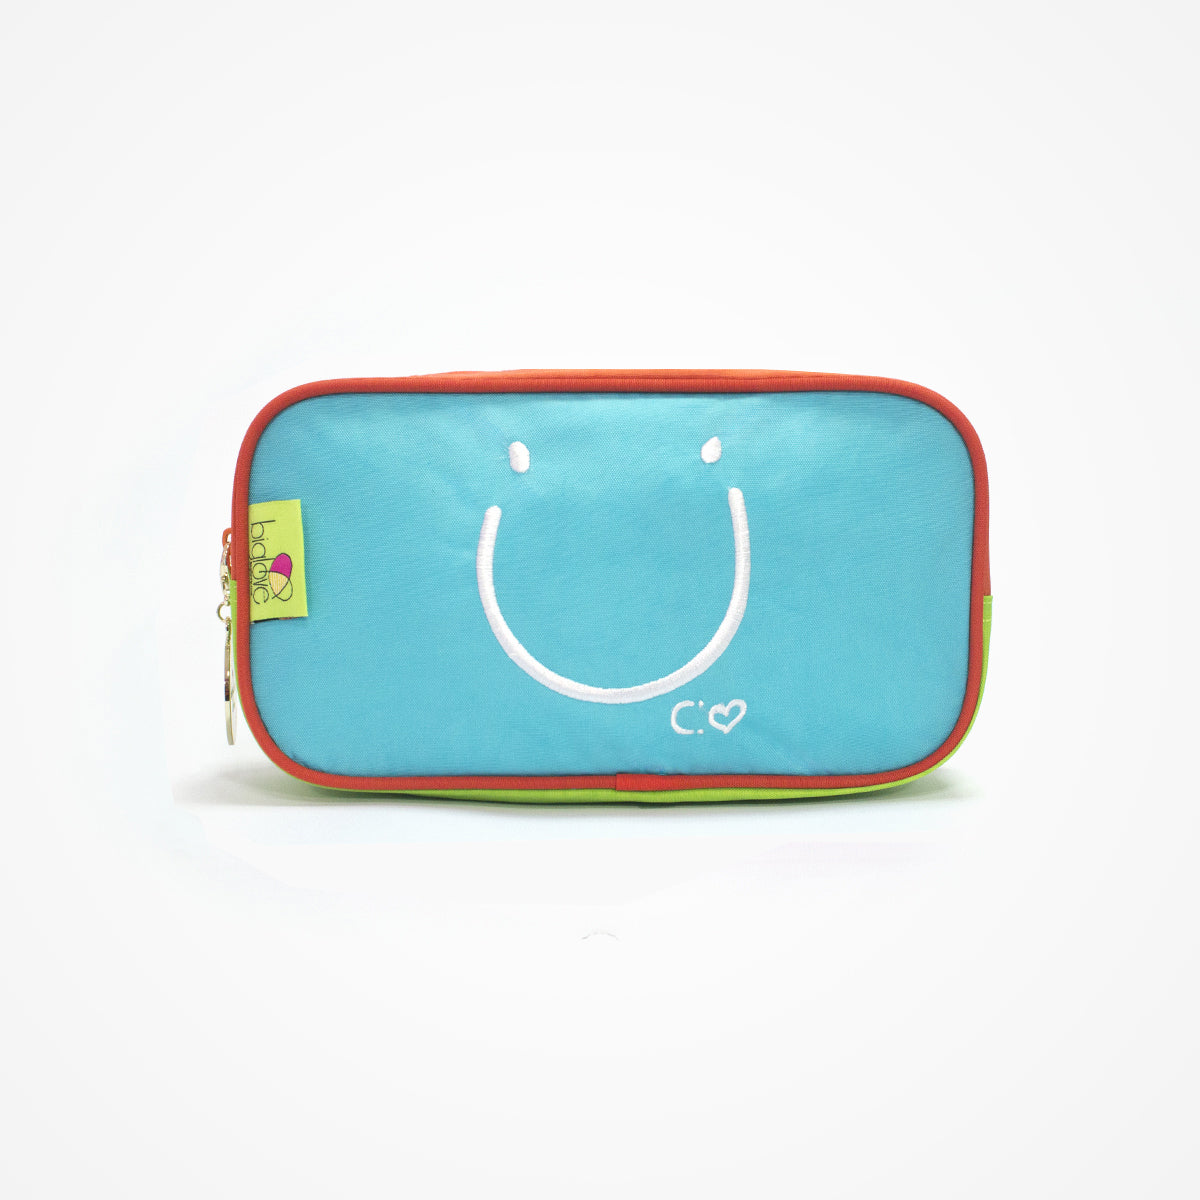 accessory bag - happiness - rectangular - biglove